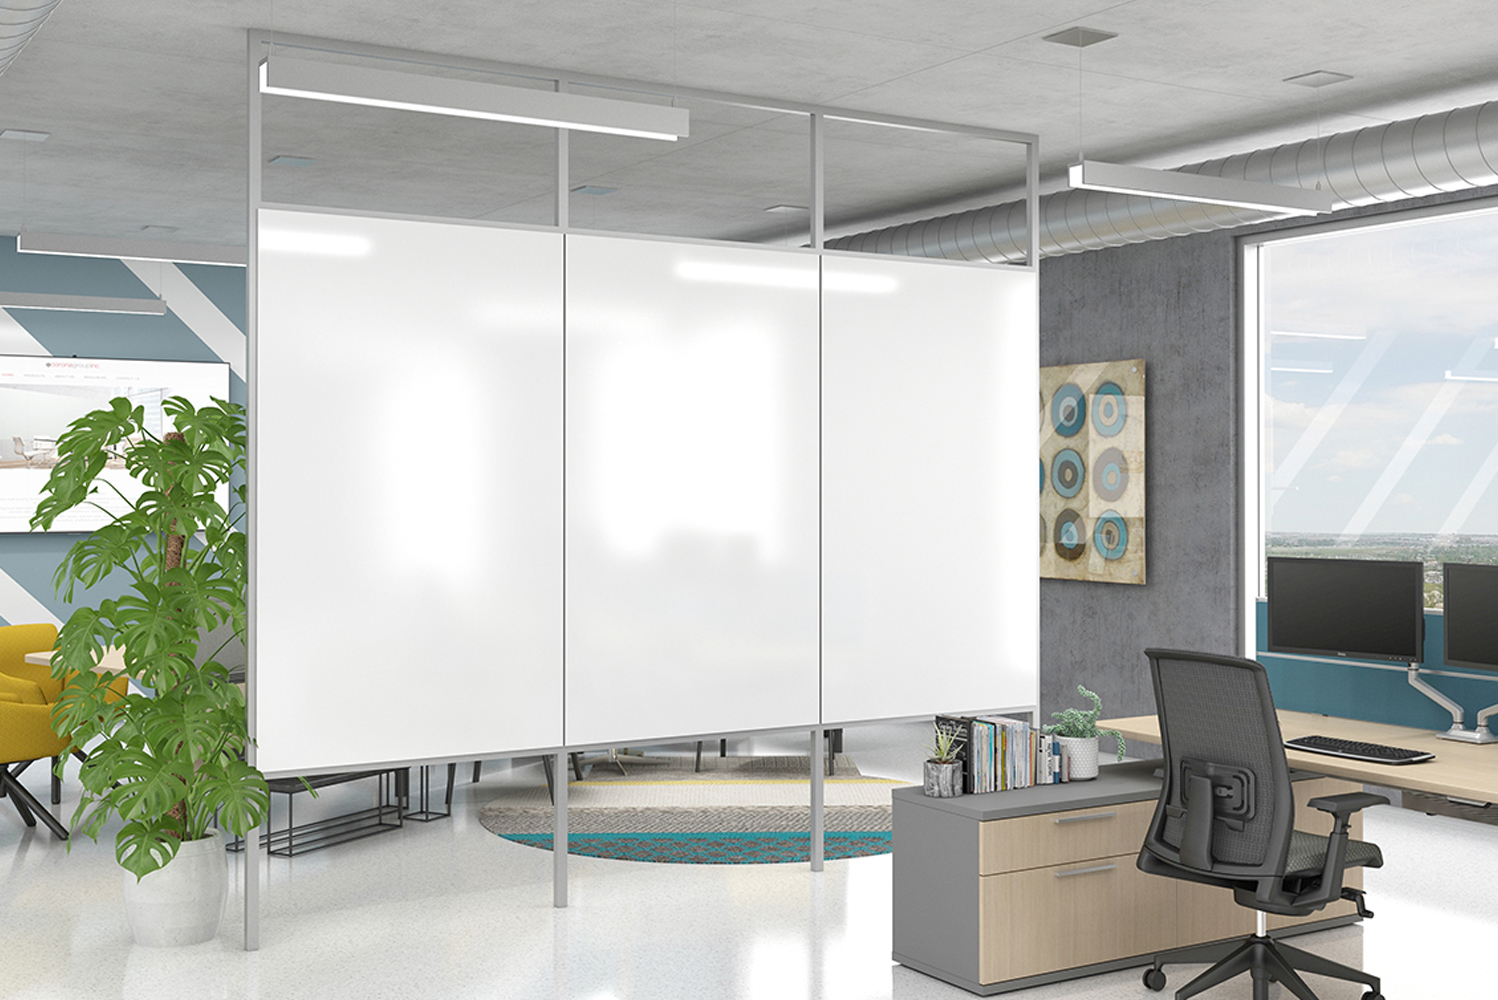 It was designed to fit in almost any open space environment and not be confined or anchored to the wall.